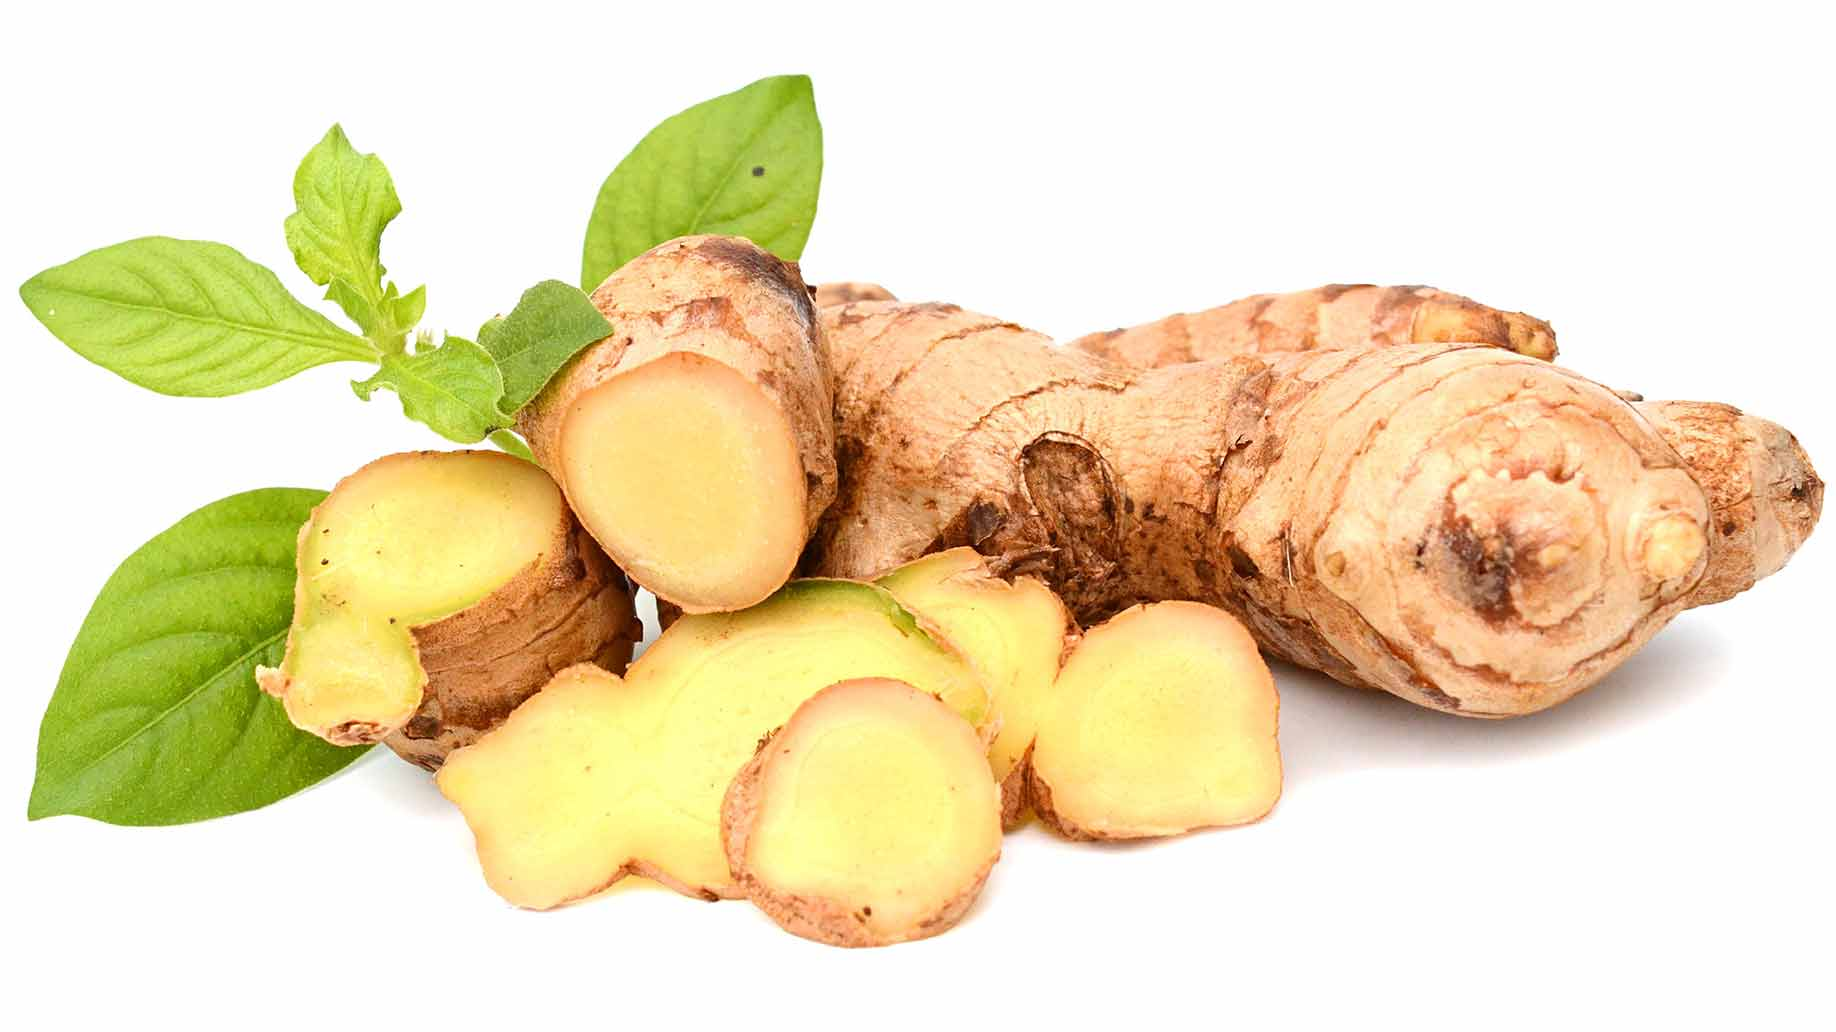 ginger raw freshly sliced